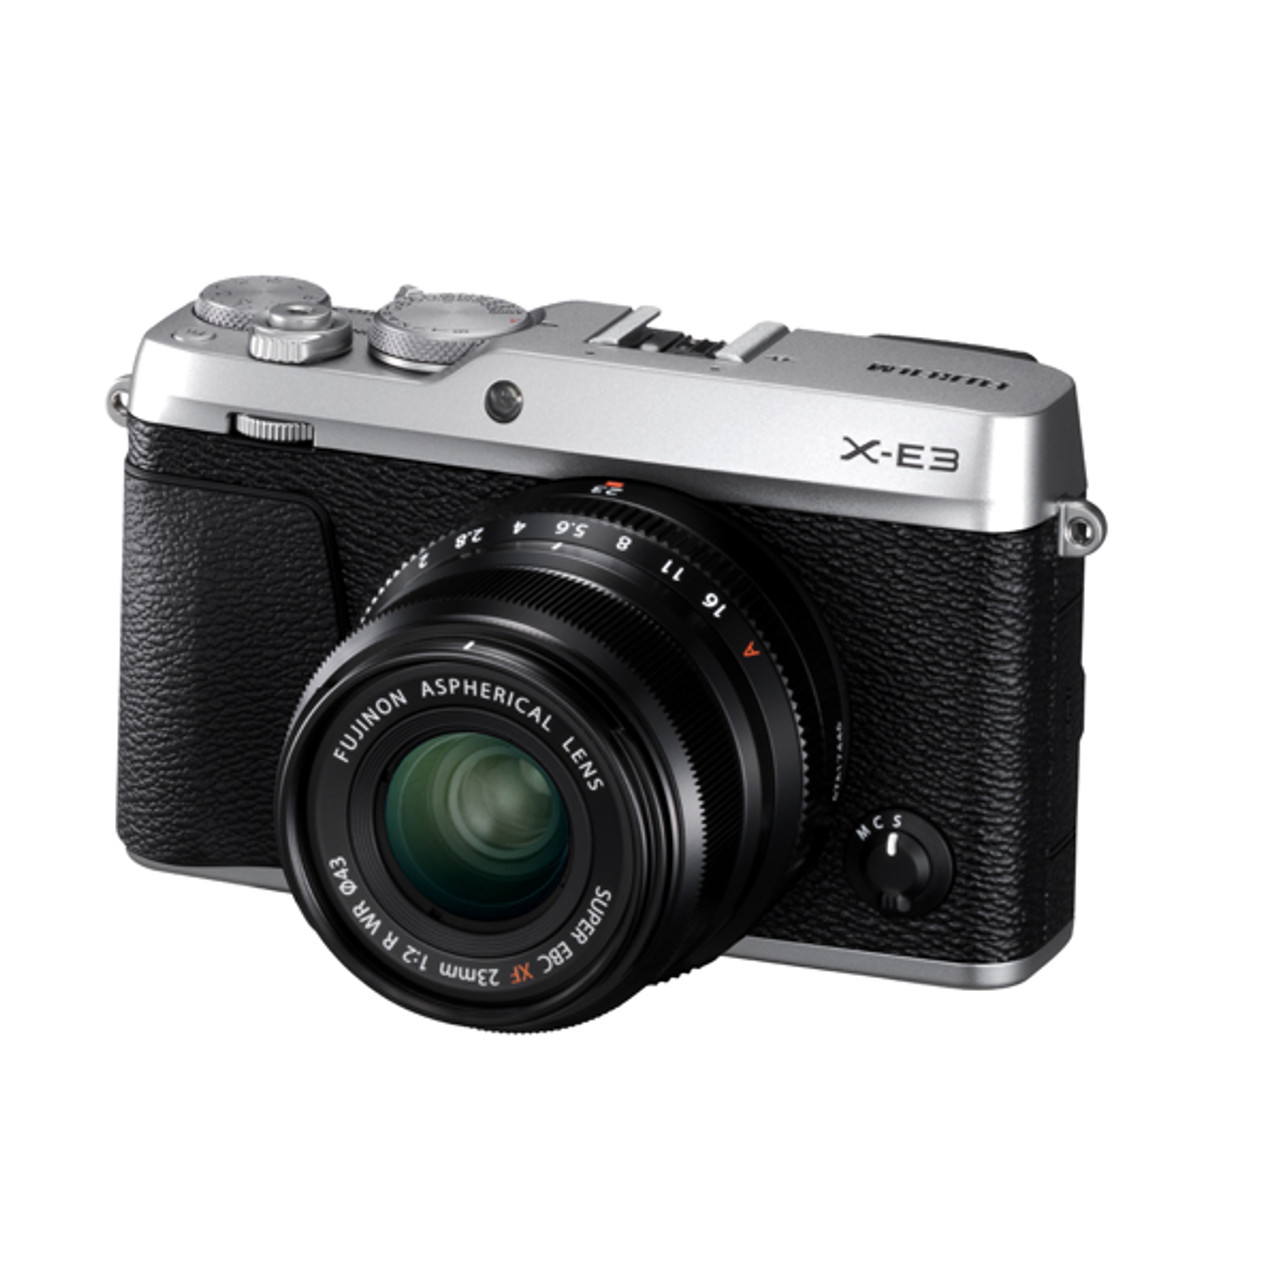 Fujifilm X-E3 23mm F2 Kit Silver